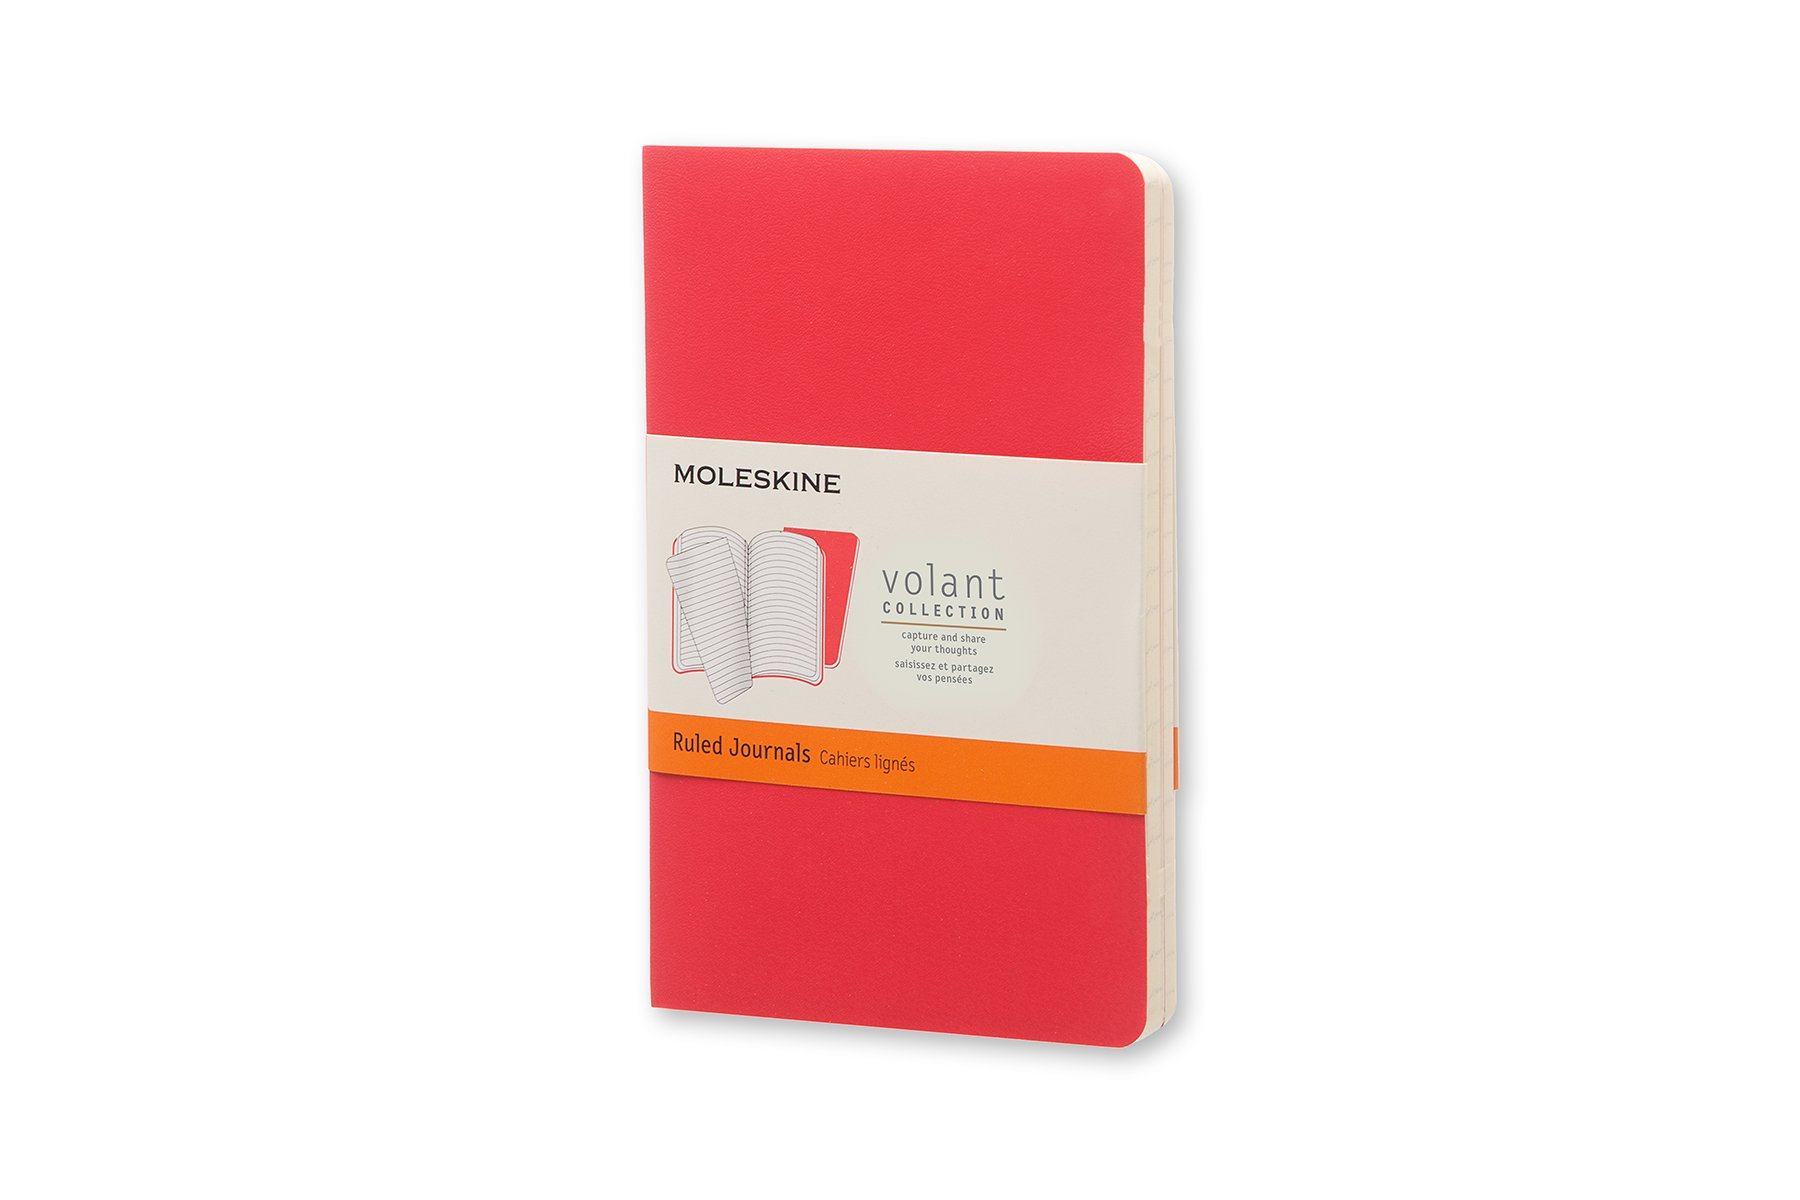 Moleskine Volant Soft Cover Journal, Red, Ruled, Pocket x2